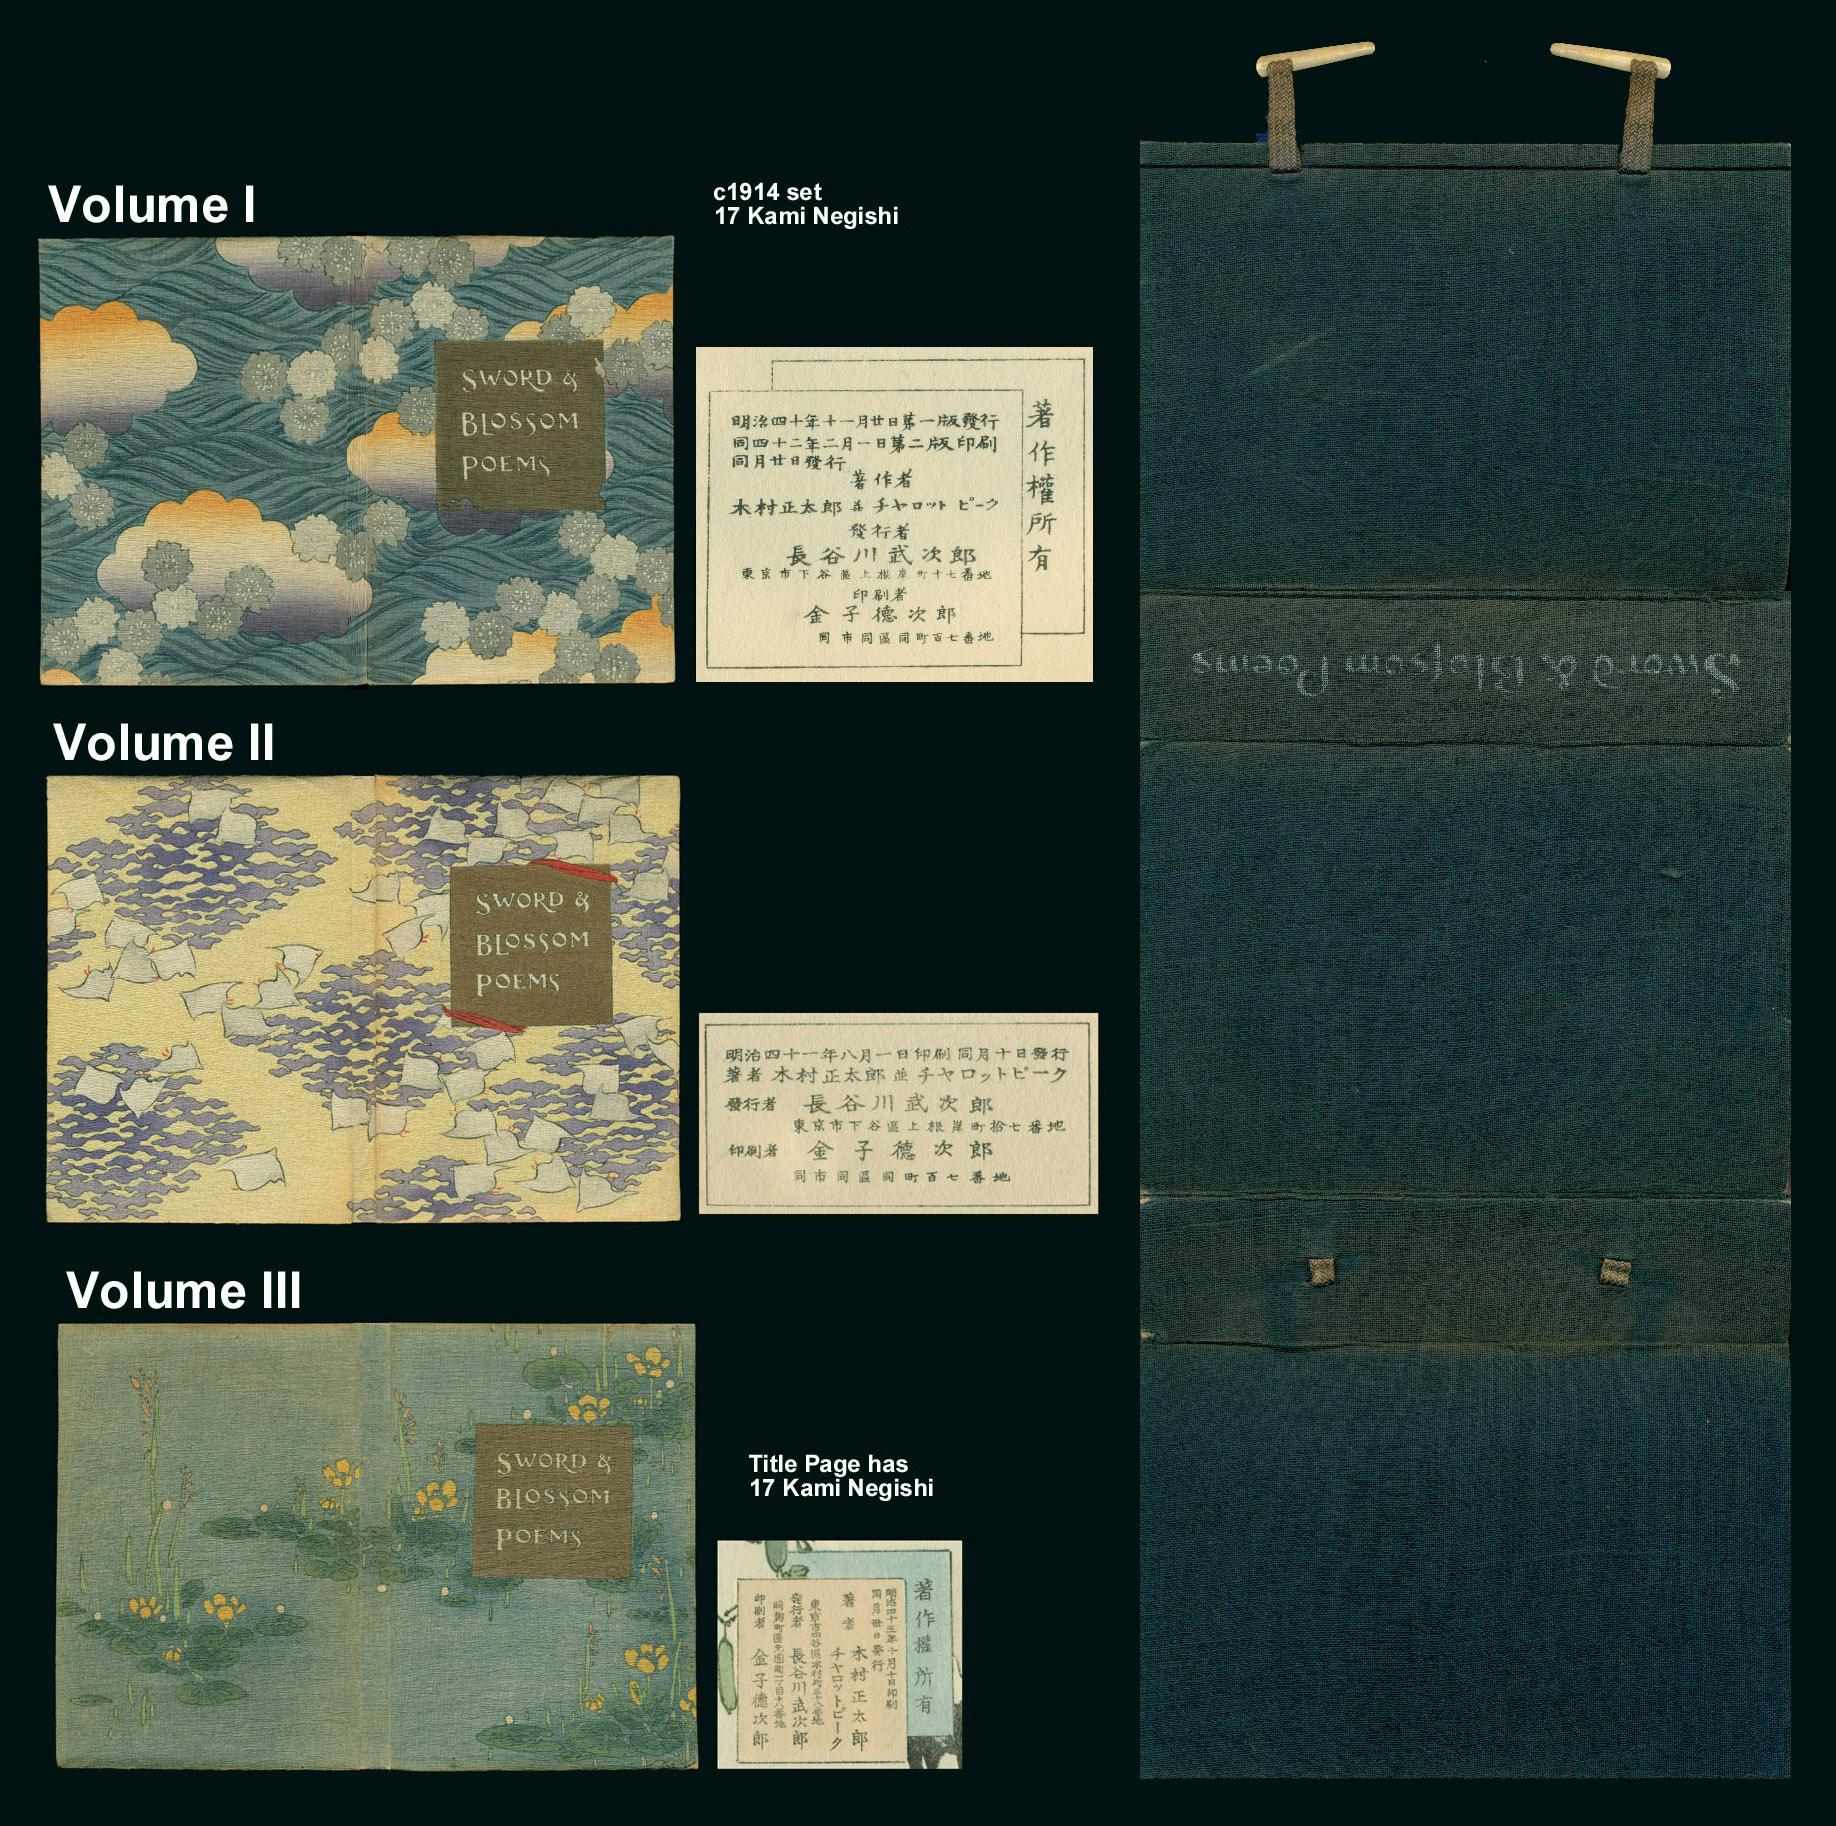 books published by t hasegawa tokyo matched set c1914 all three volumes the 17 kami negishi address in the colophon to see the covers colophons and case for this set